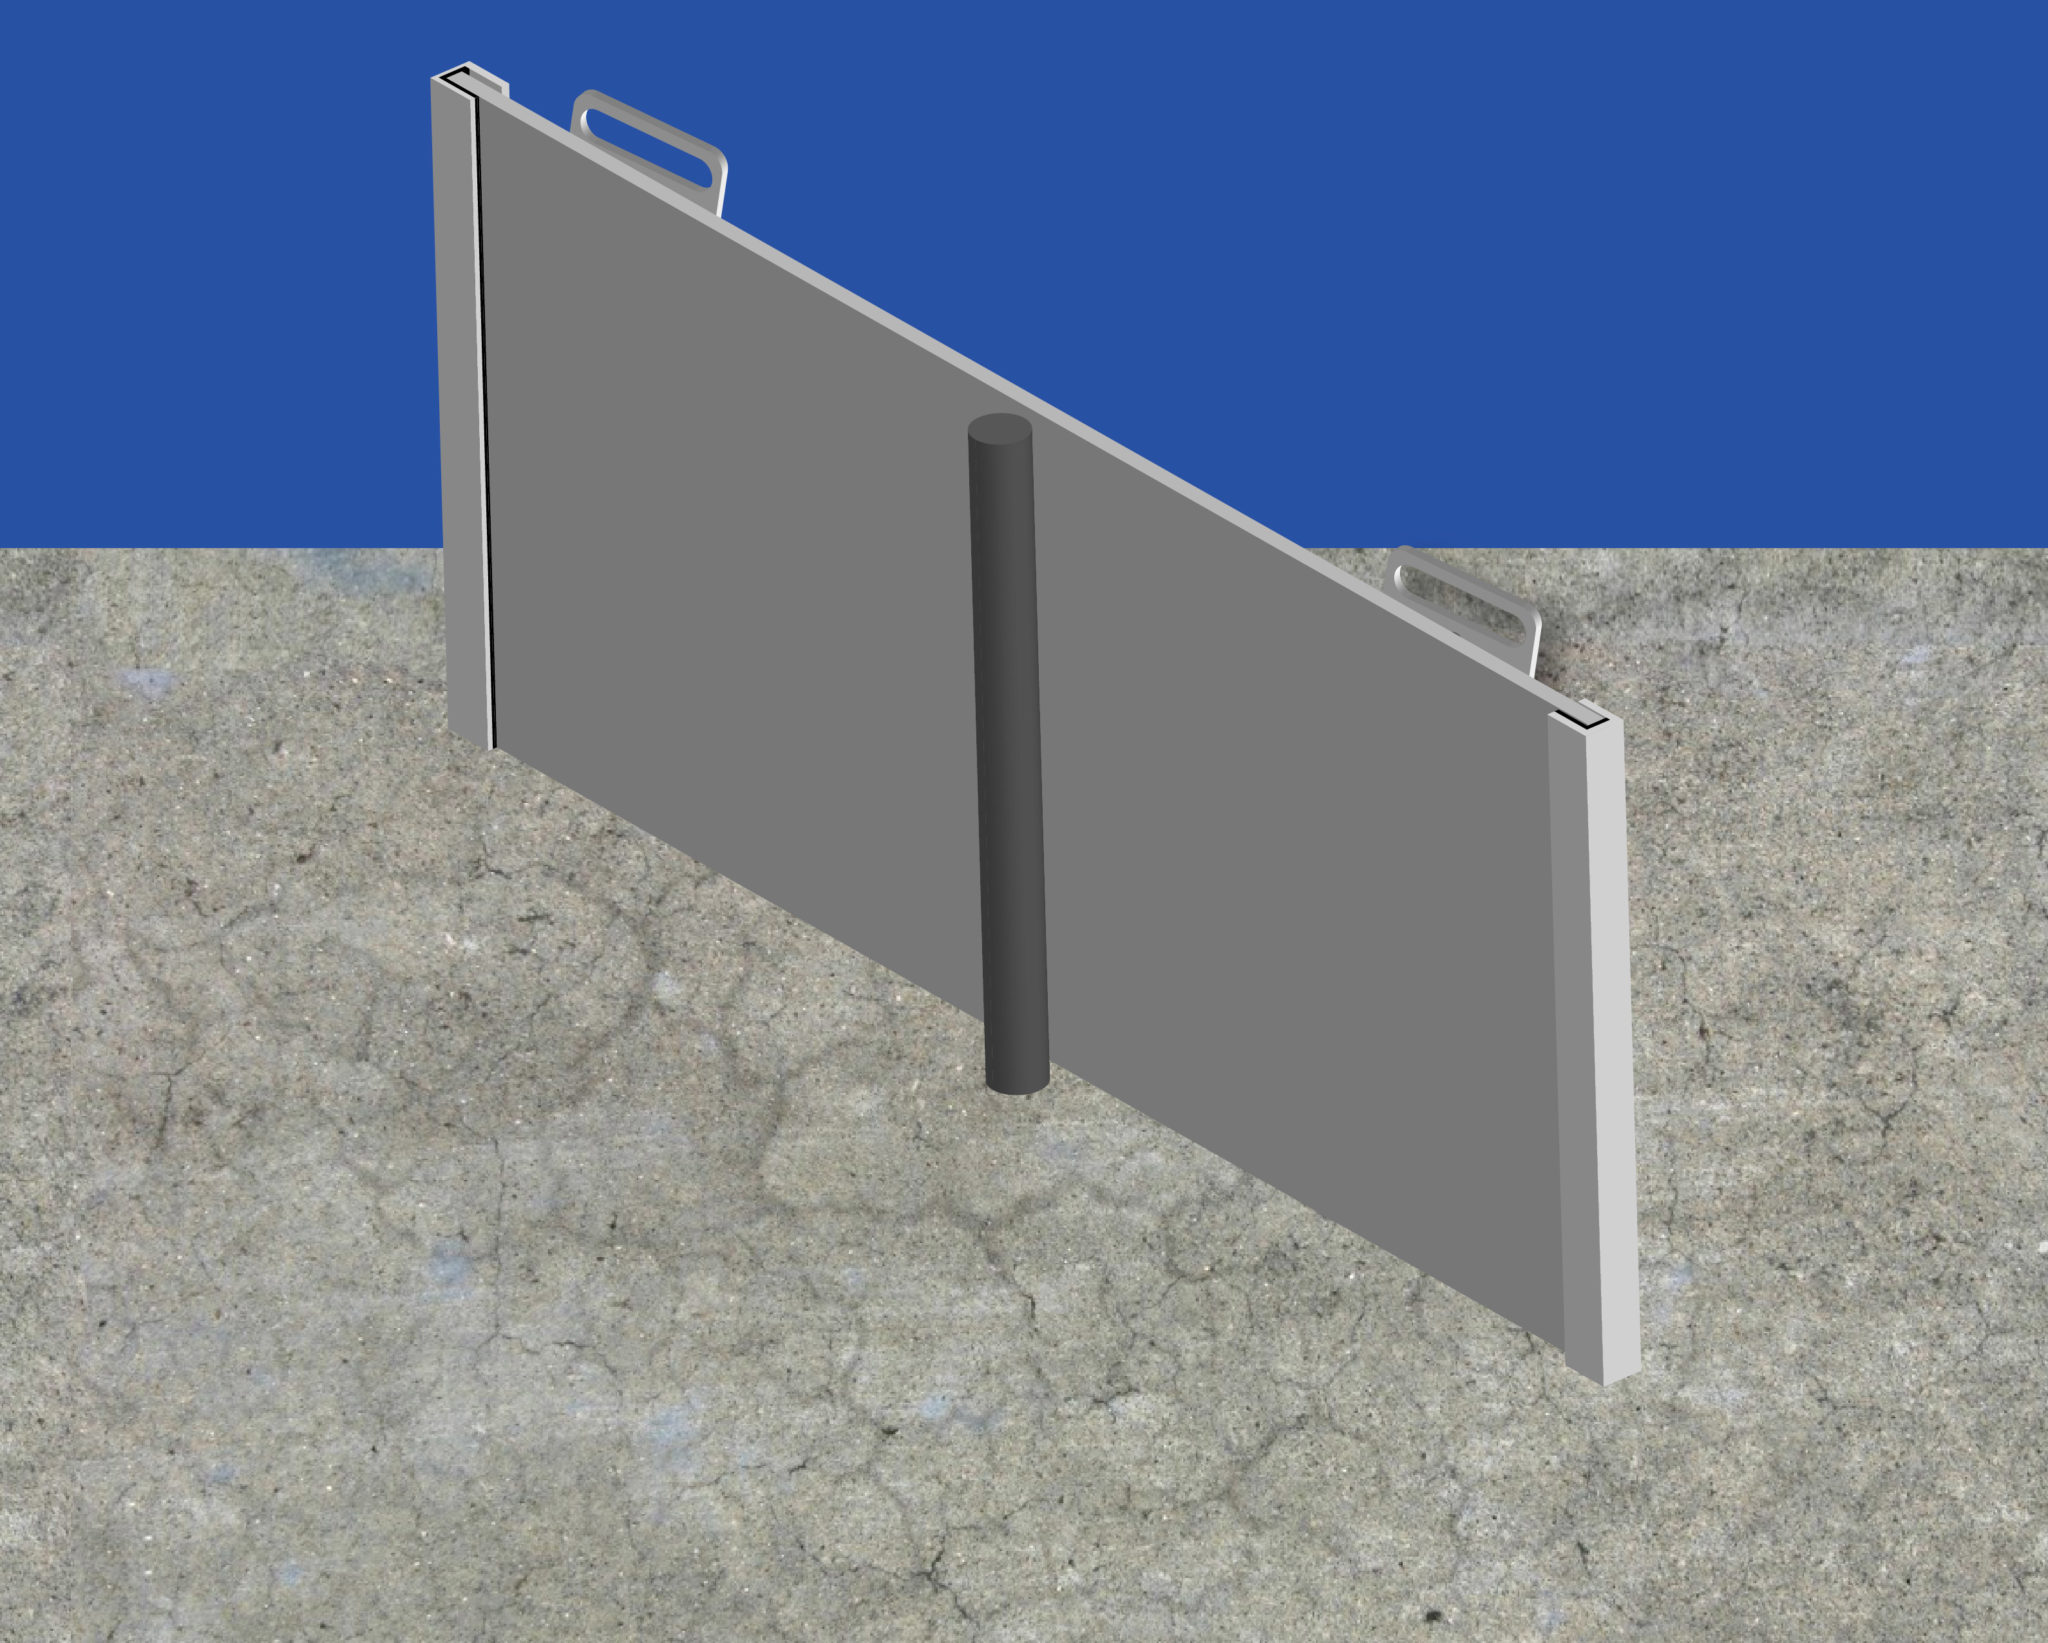 Protective Concrete Poles : Flood protection for your door barrier shields